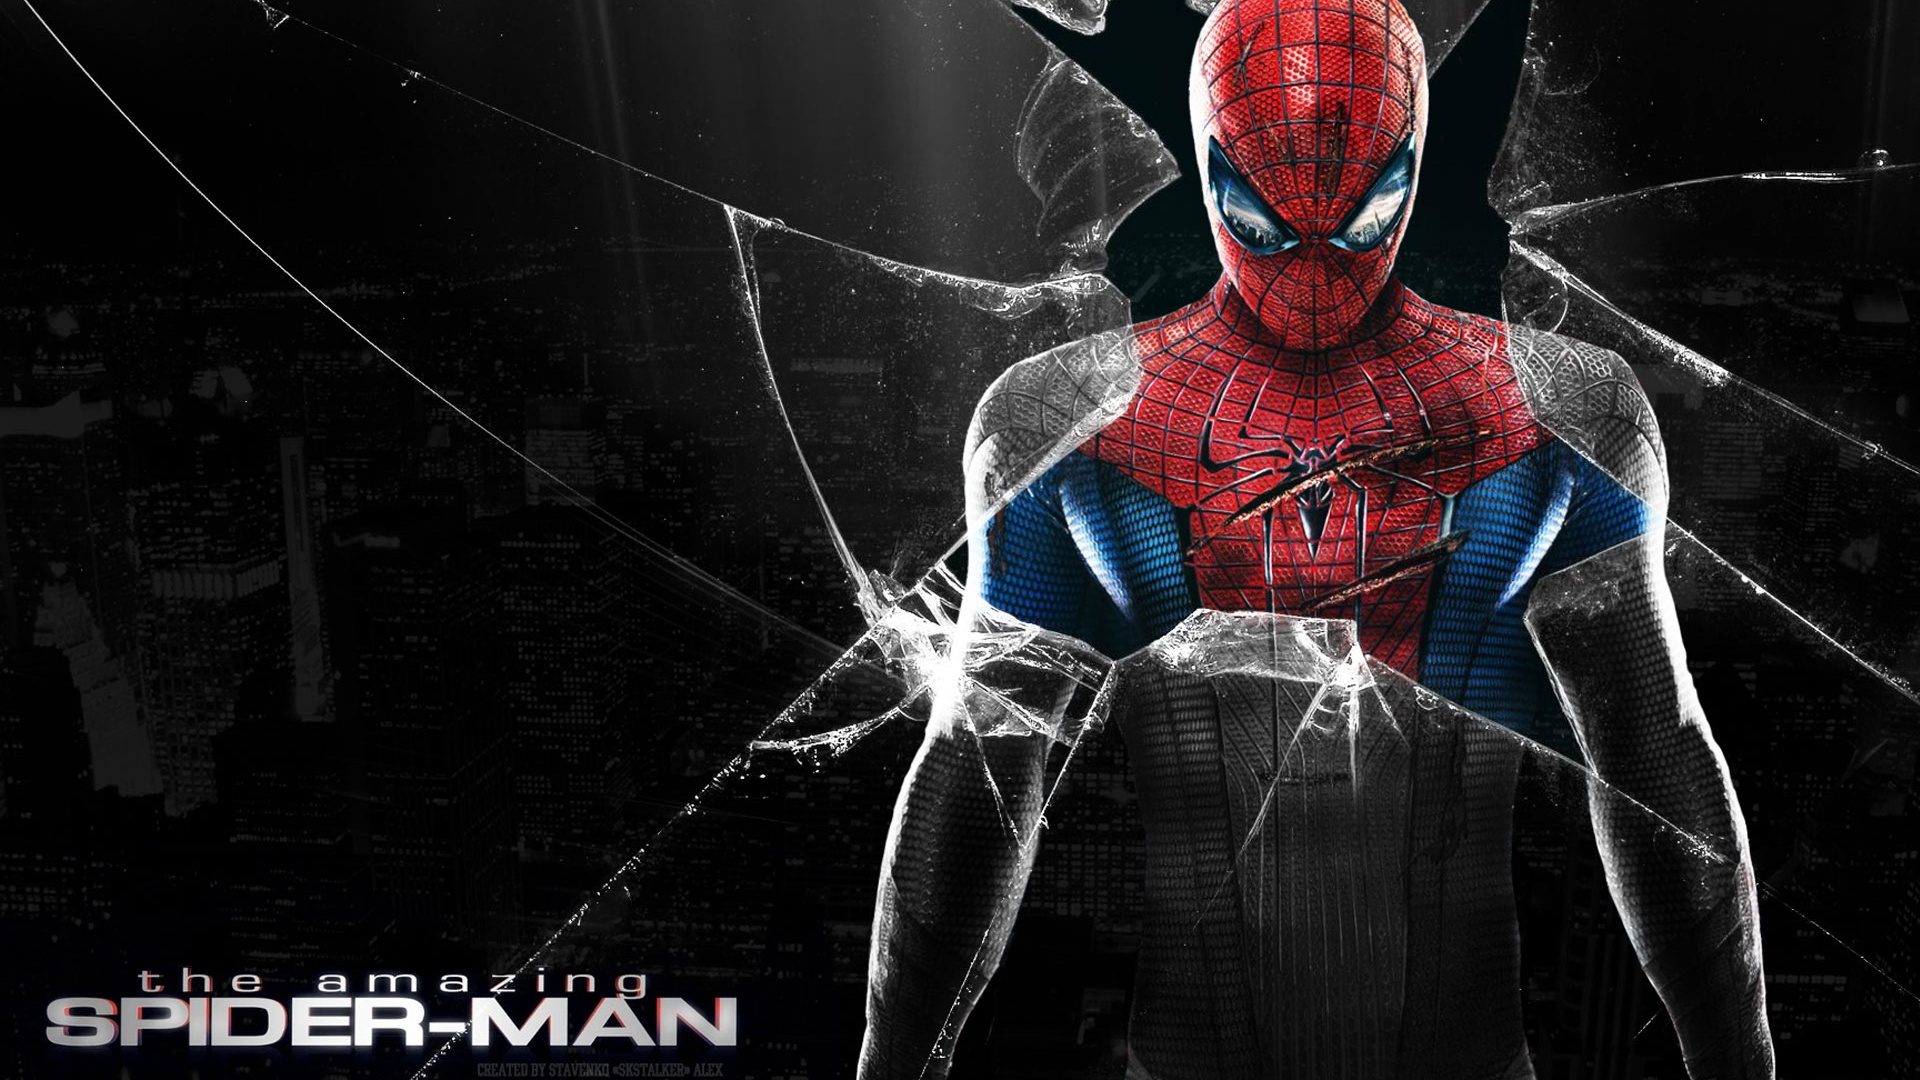 Game Of Spider Man Hd Wallpaper: 2012 The Amazing Spider-Man Wallpaper